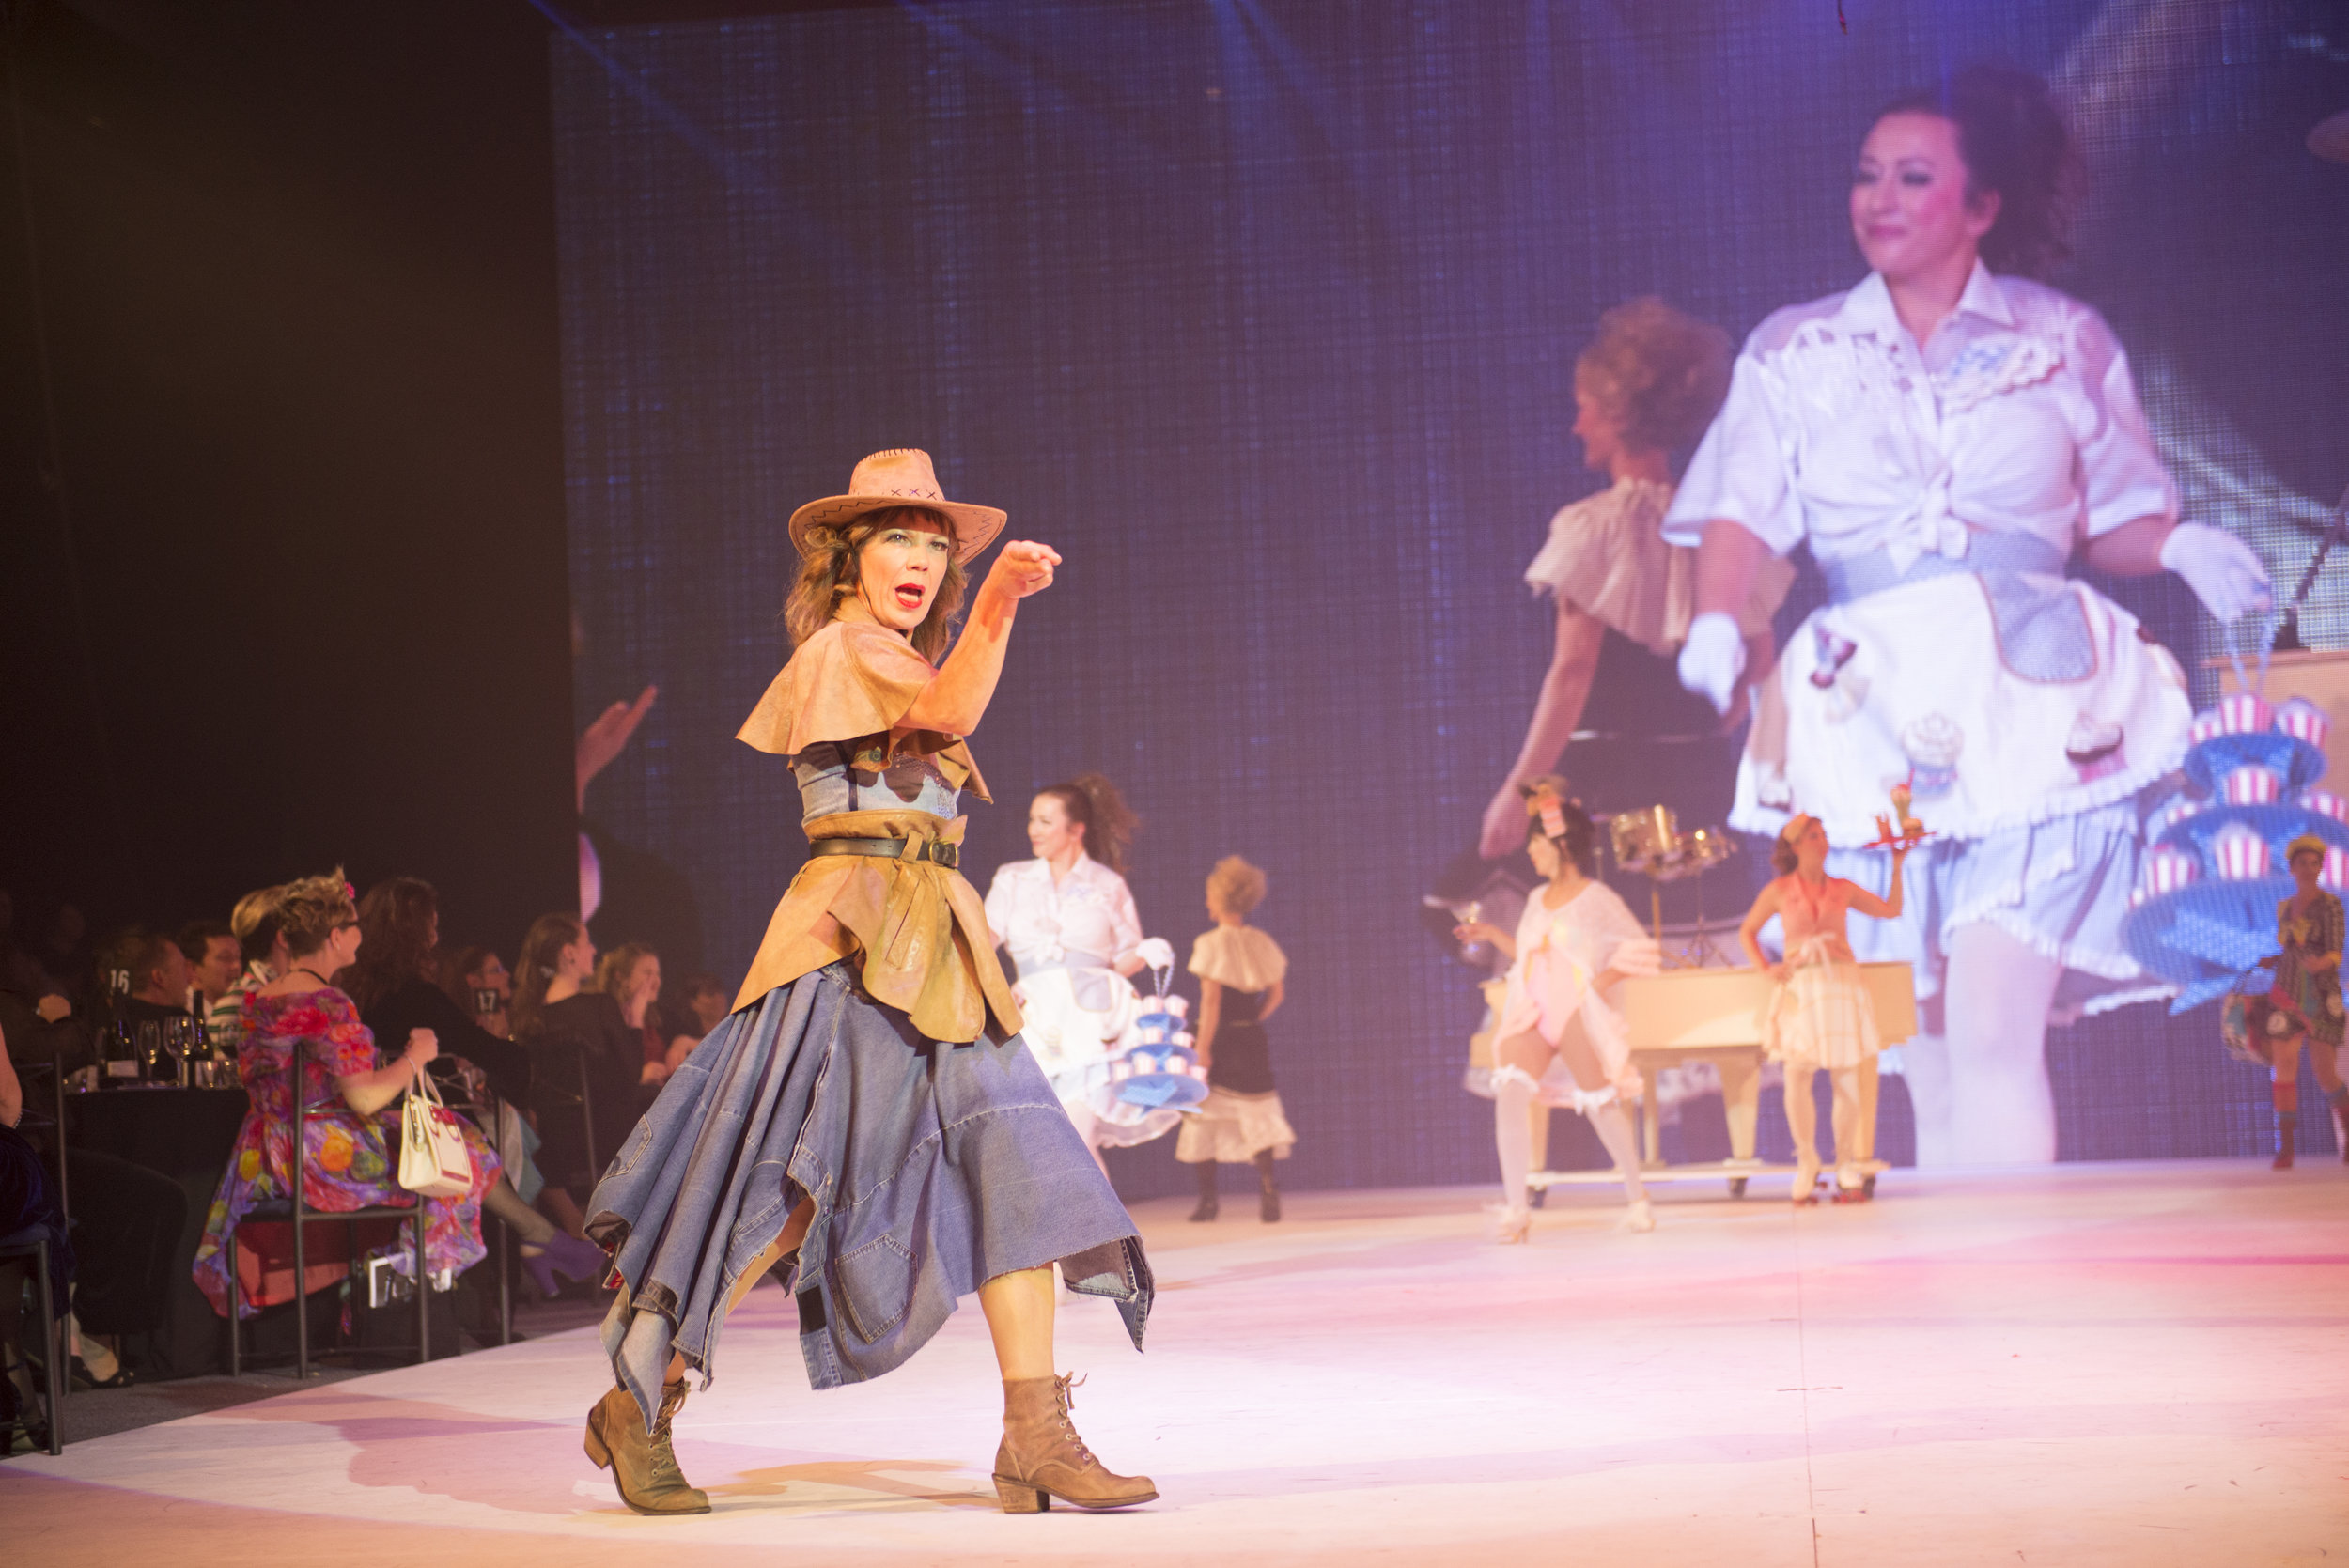 Tarnished Frocks and Divas 2013